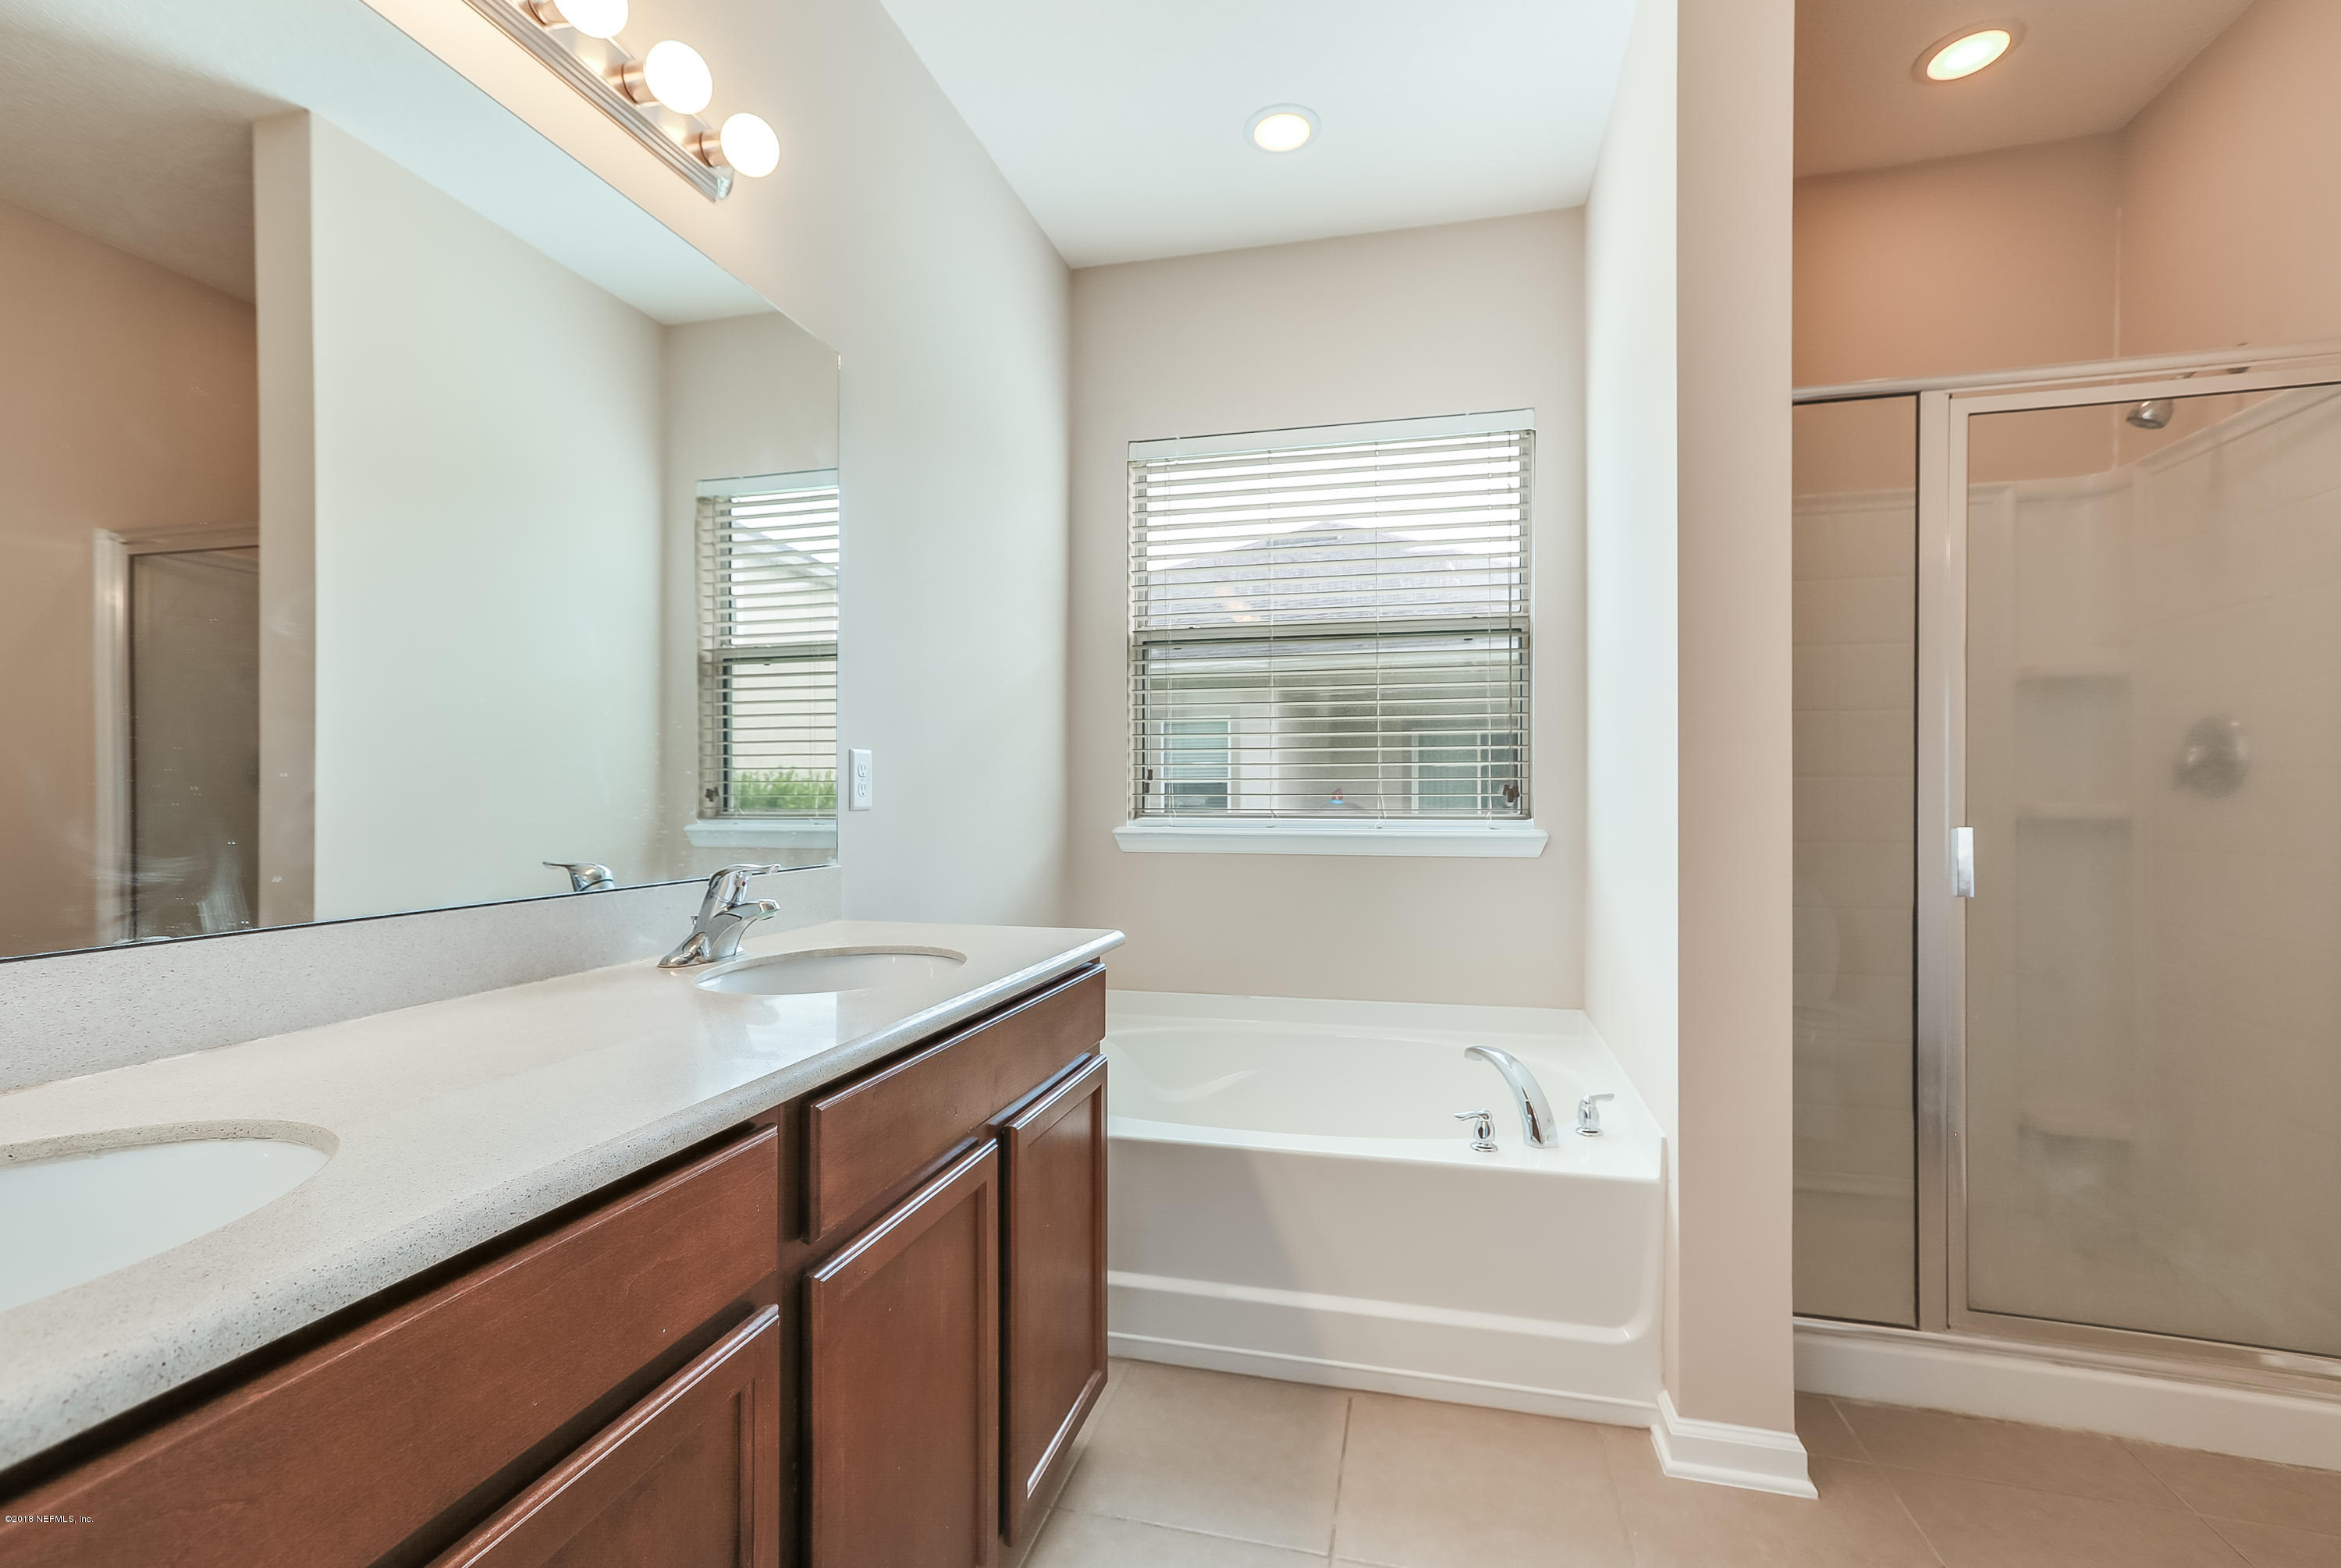 204 ARBOR GREEN, ST JOHNS, FLORIDA 32259, 4 Bedrooms Bedrooms, ,2 BathroomsBathrooms,Residential - single family,For sale,ARBOR GREEN,952988